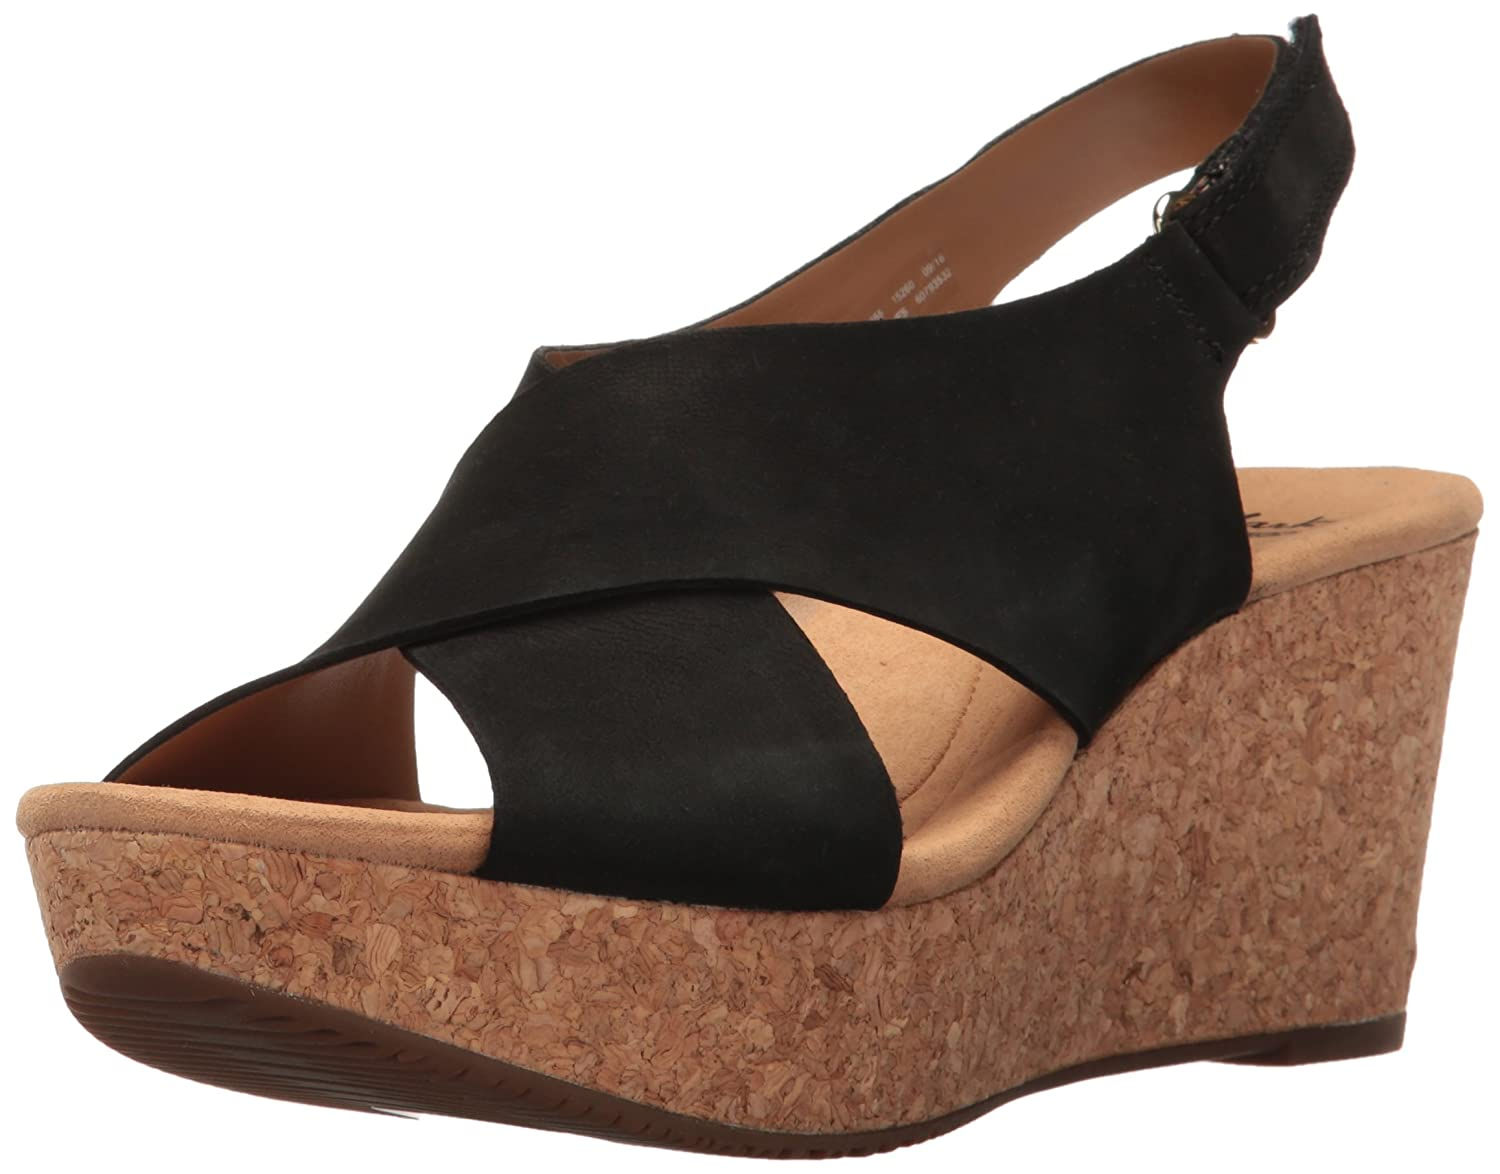 80ff2df99864 Amazon.com | Clarks Women's Annadel Eirwyn Wedge Sandal | Platforms & Wedges